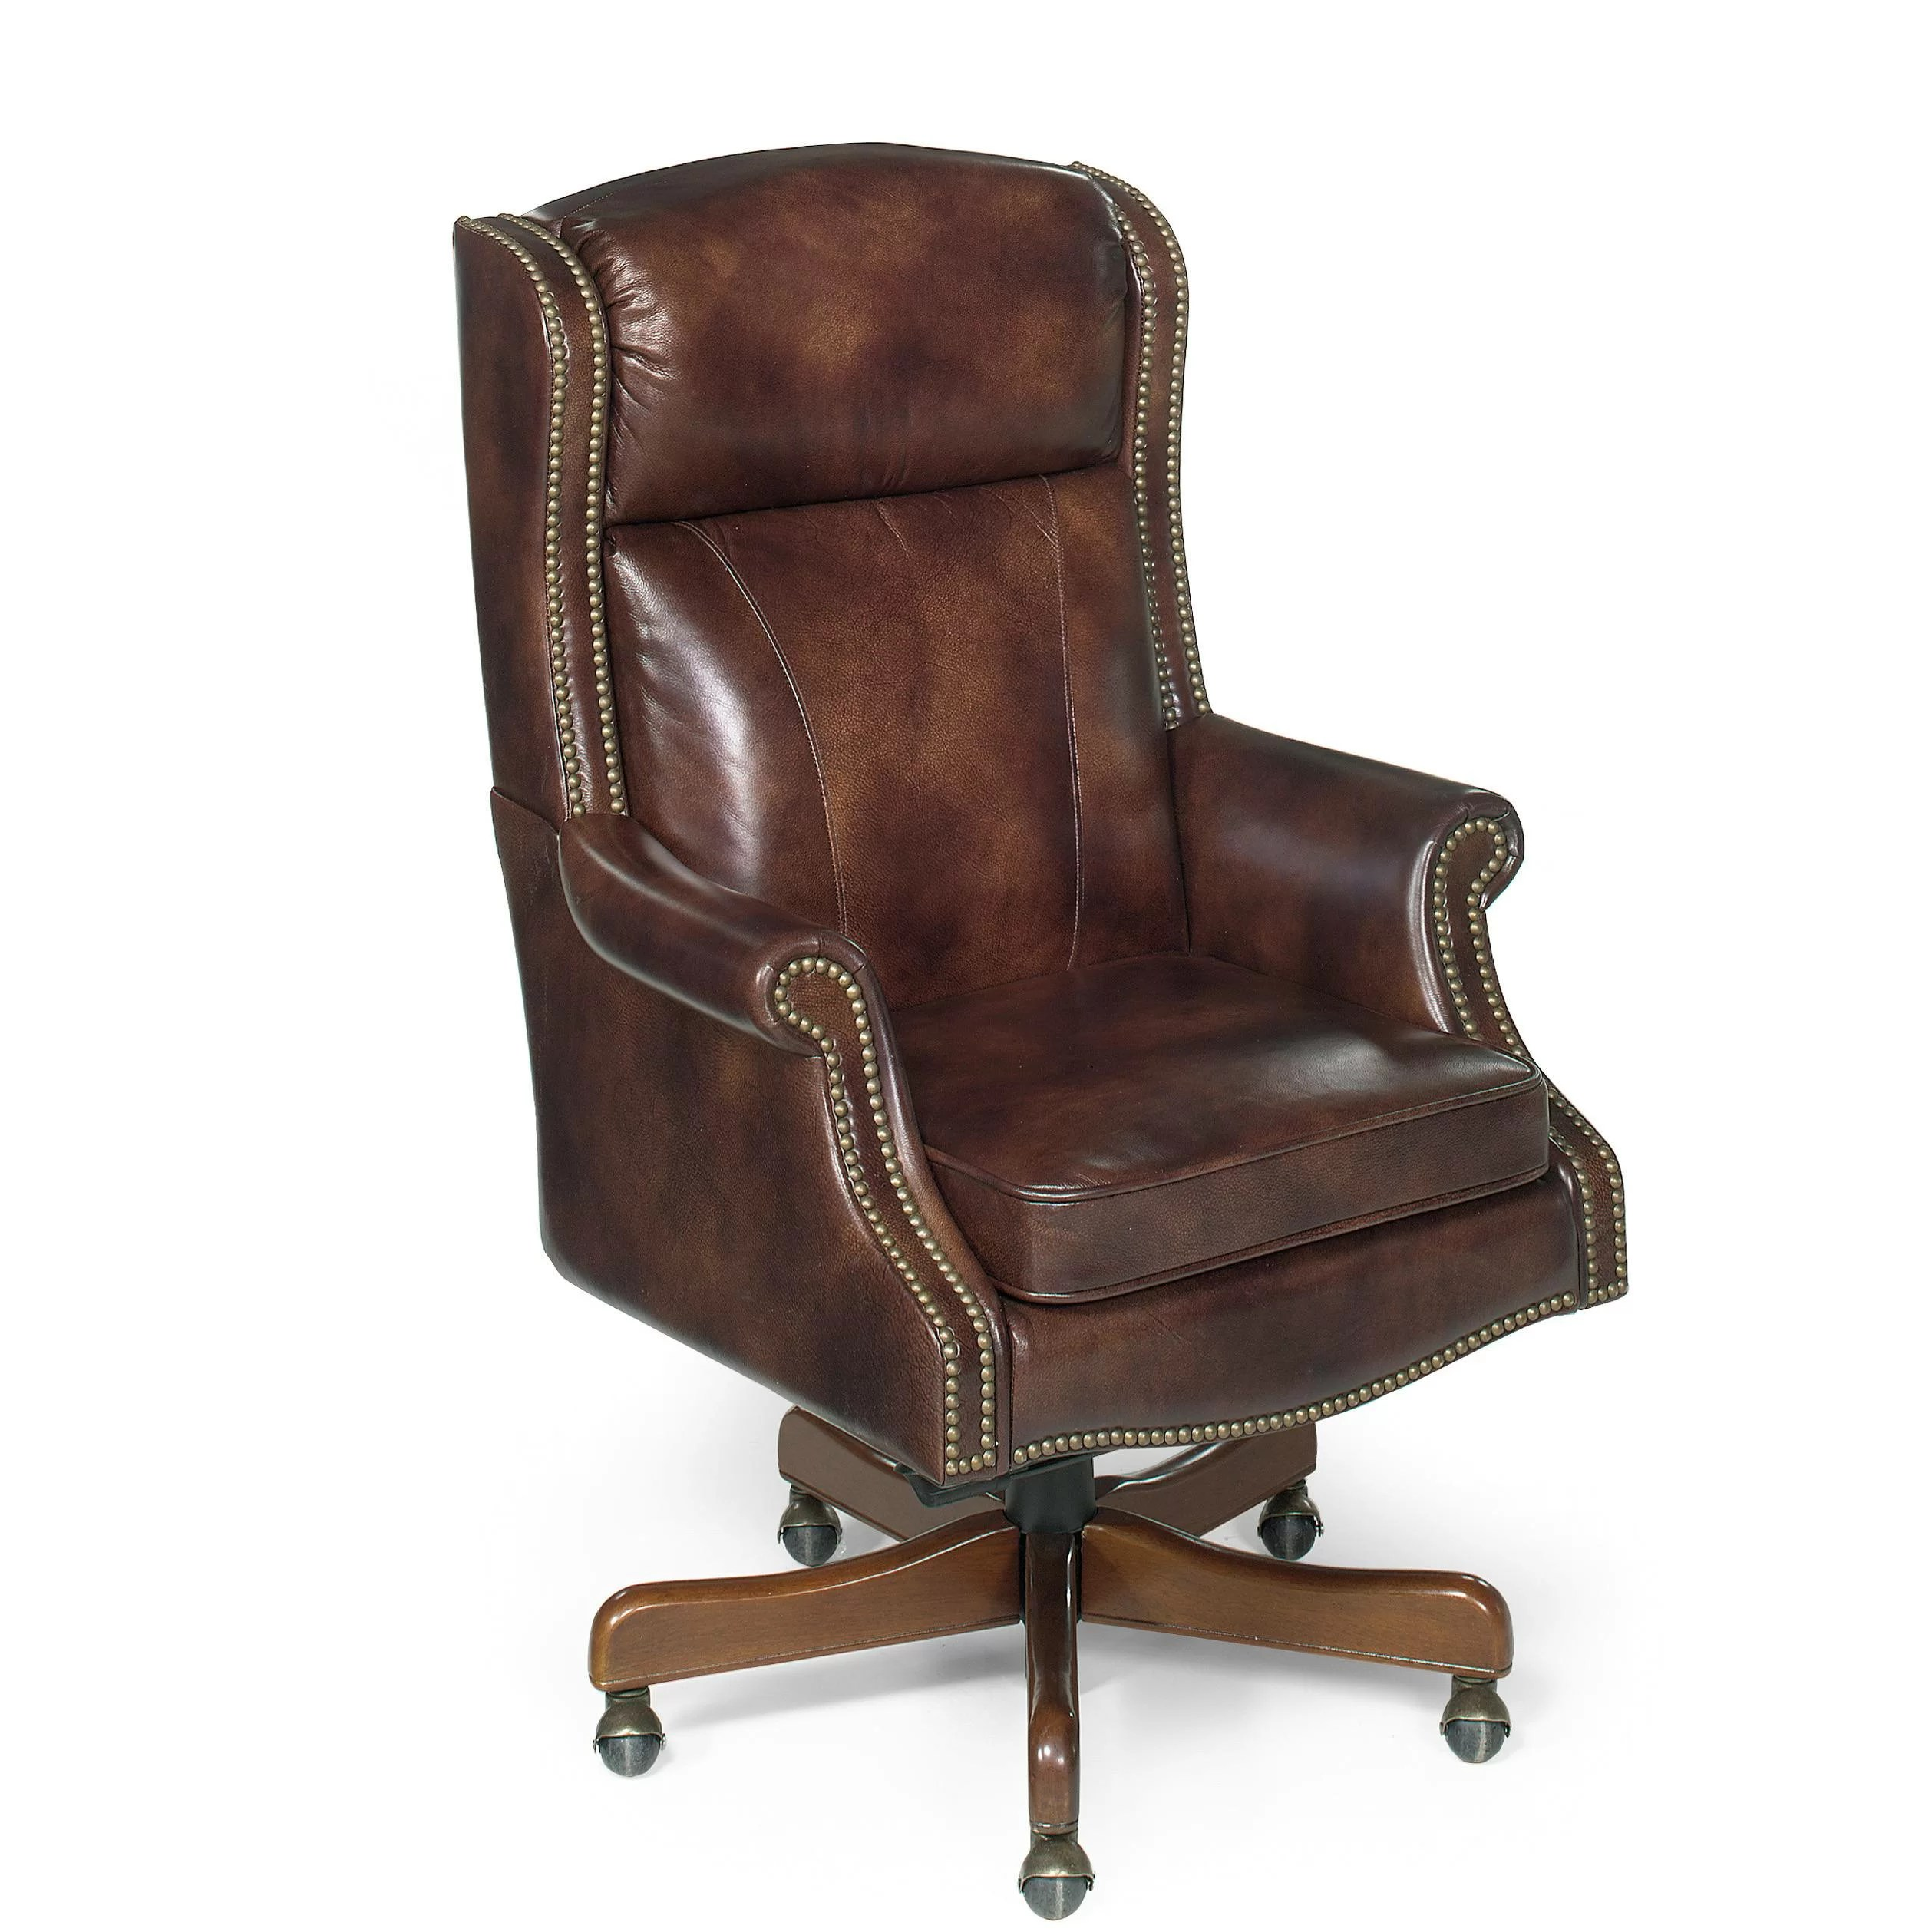 Hooker Leather Chair Hooker Furniture Empire Leather Executive Chair Wayfair